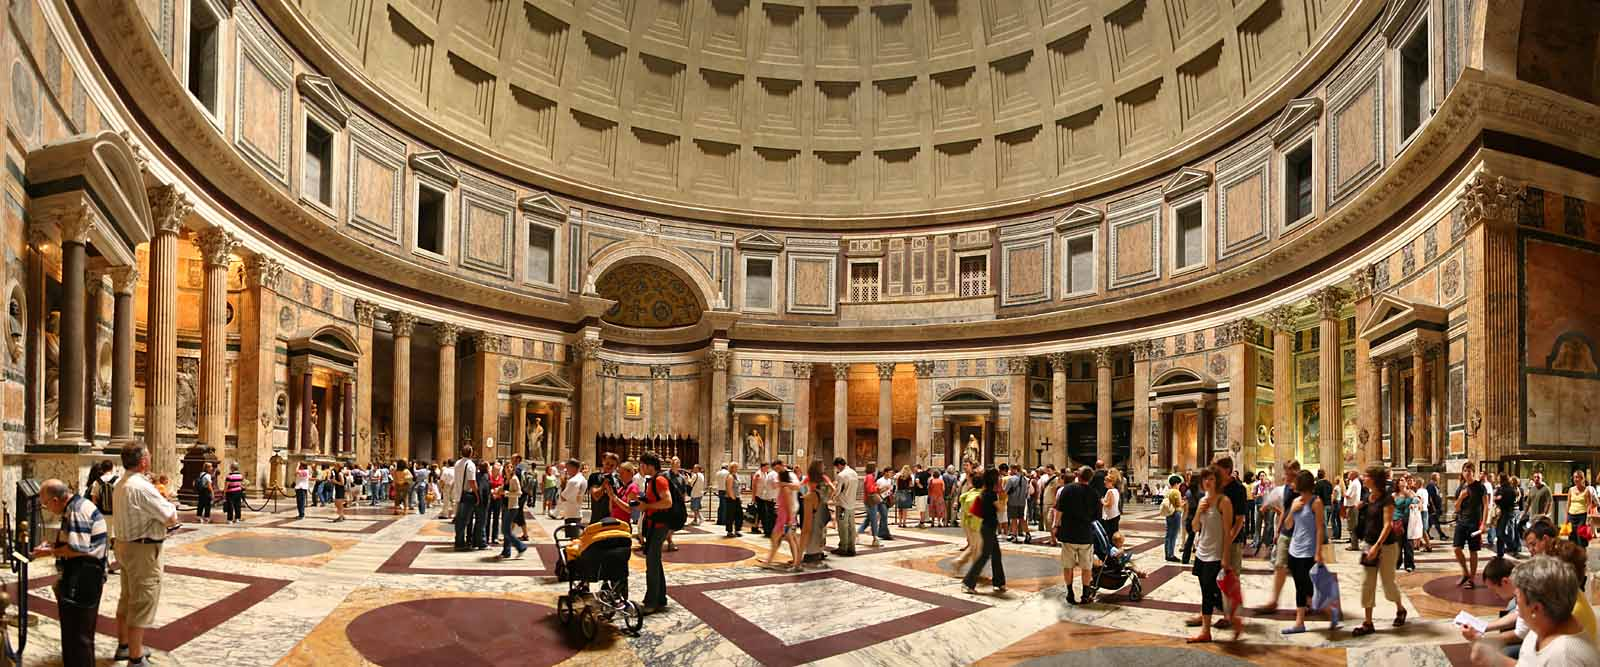 pantheon_places_to_see_in_rome_romaluxury